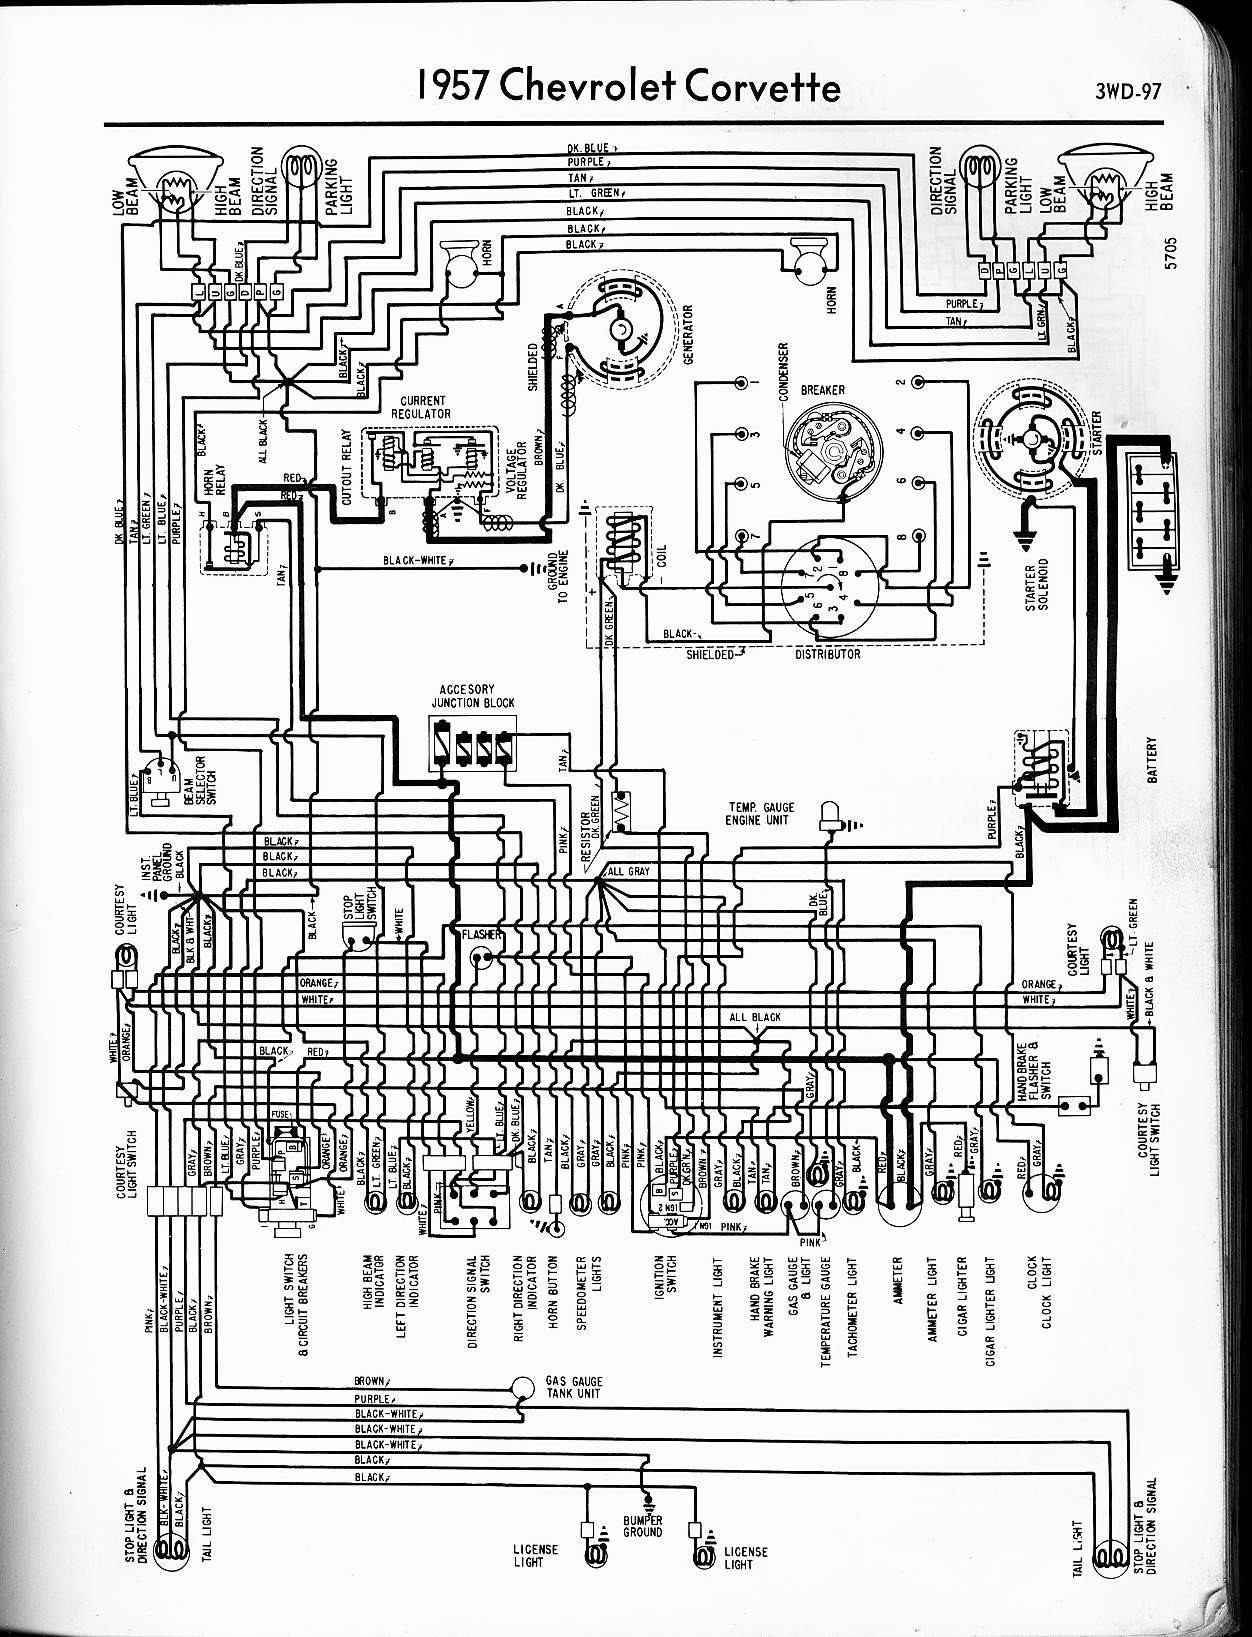 V8 Chevy Engine Starter Wiring Diagram 1974 Well Detailed 1969 Gm Coil 12 Volt For Schematic Diagrams Rh Bestkodiaddons Co 1968 Camaro